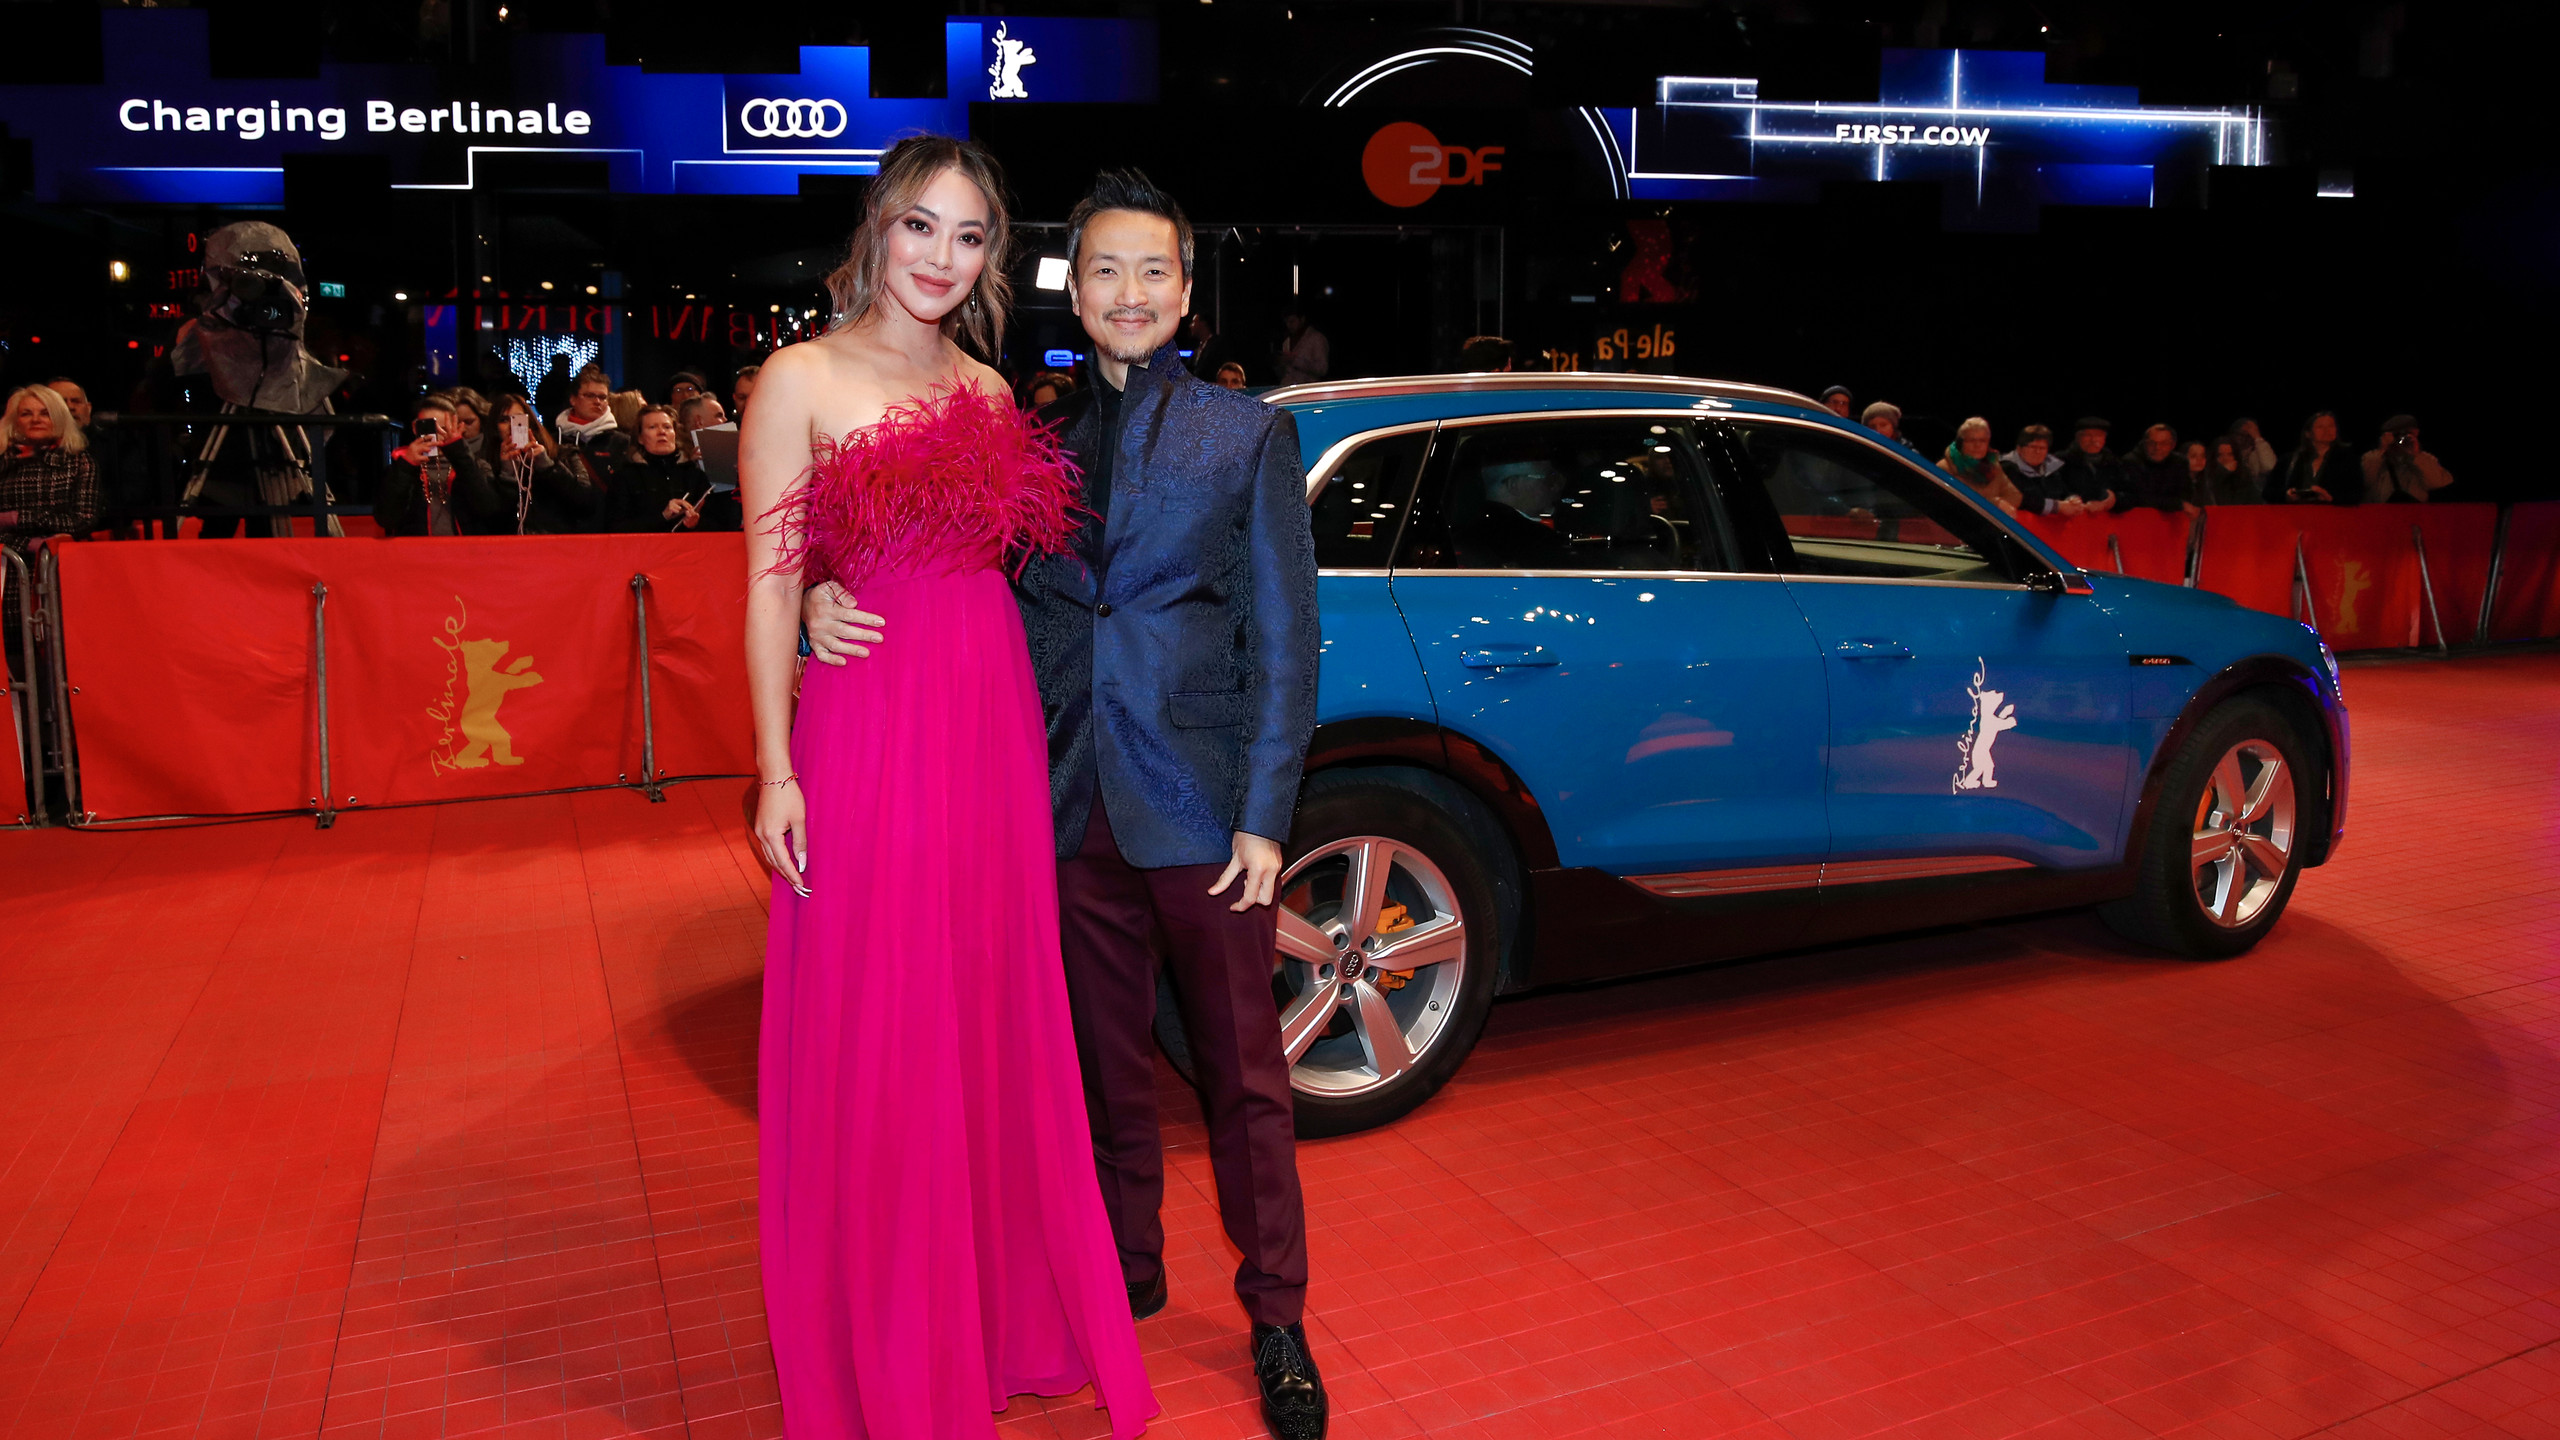 Orion Lee and guest at Berlinale